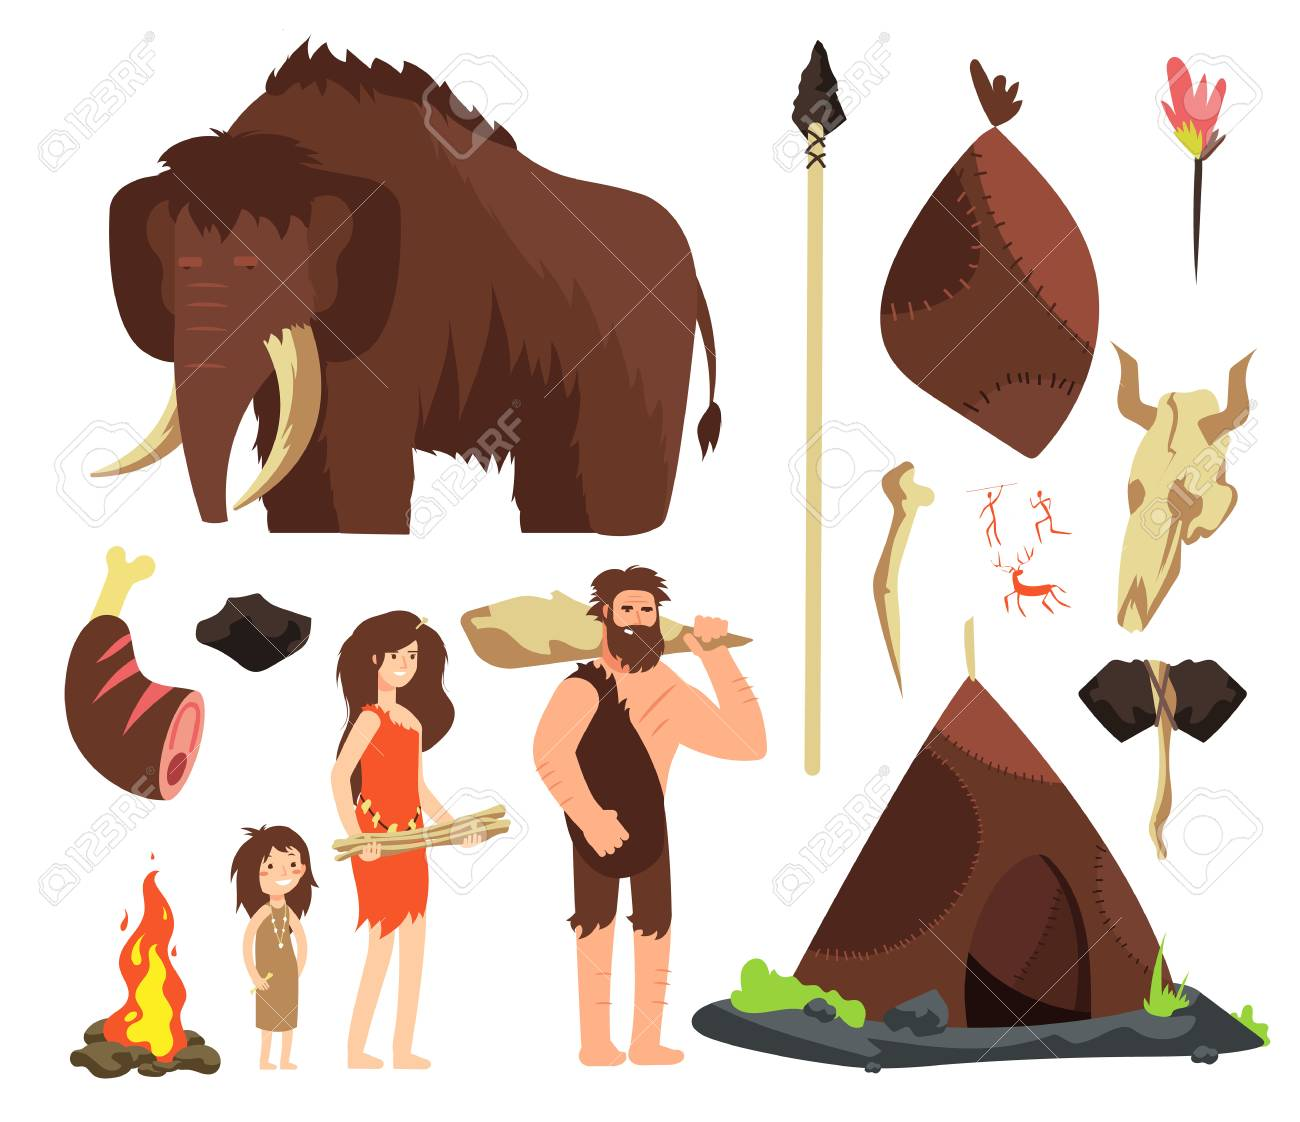 Caveman. Cartoon neolithic people characters. Prehistoric neanderthal family with animals and weapons. Isolated vector set. Mammoth and hut, neanderthal ancient people illustration - 107382892